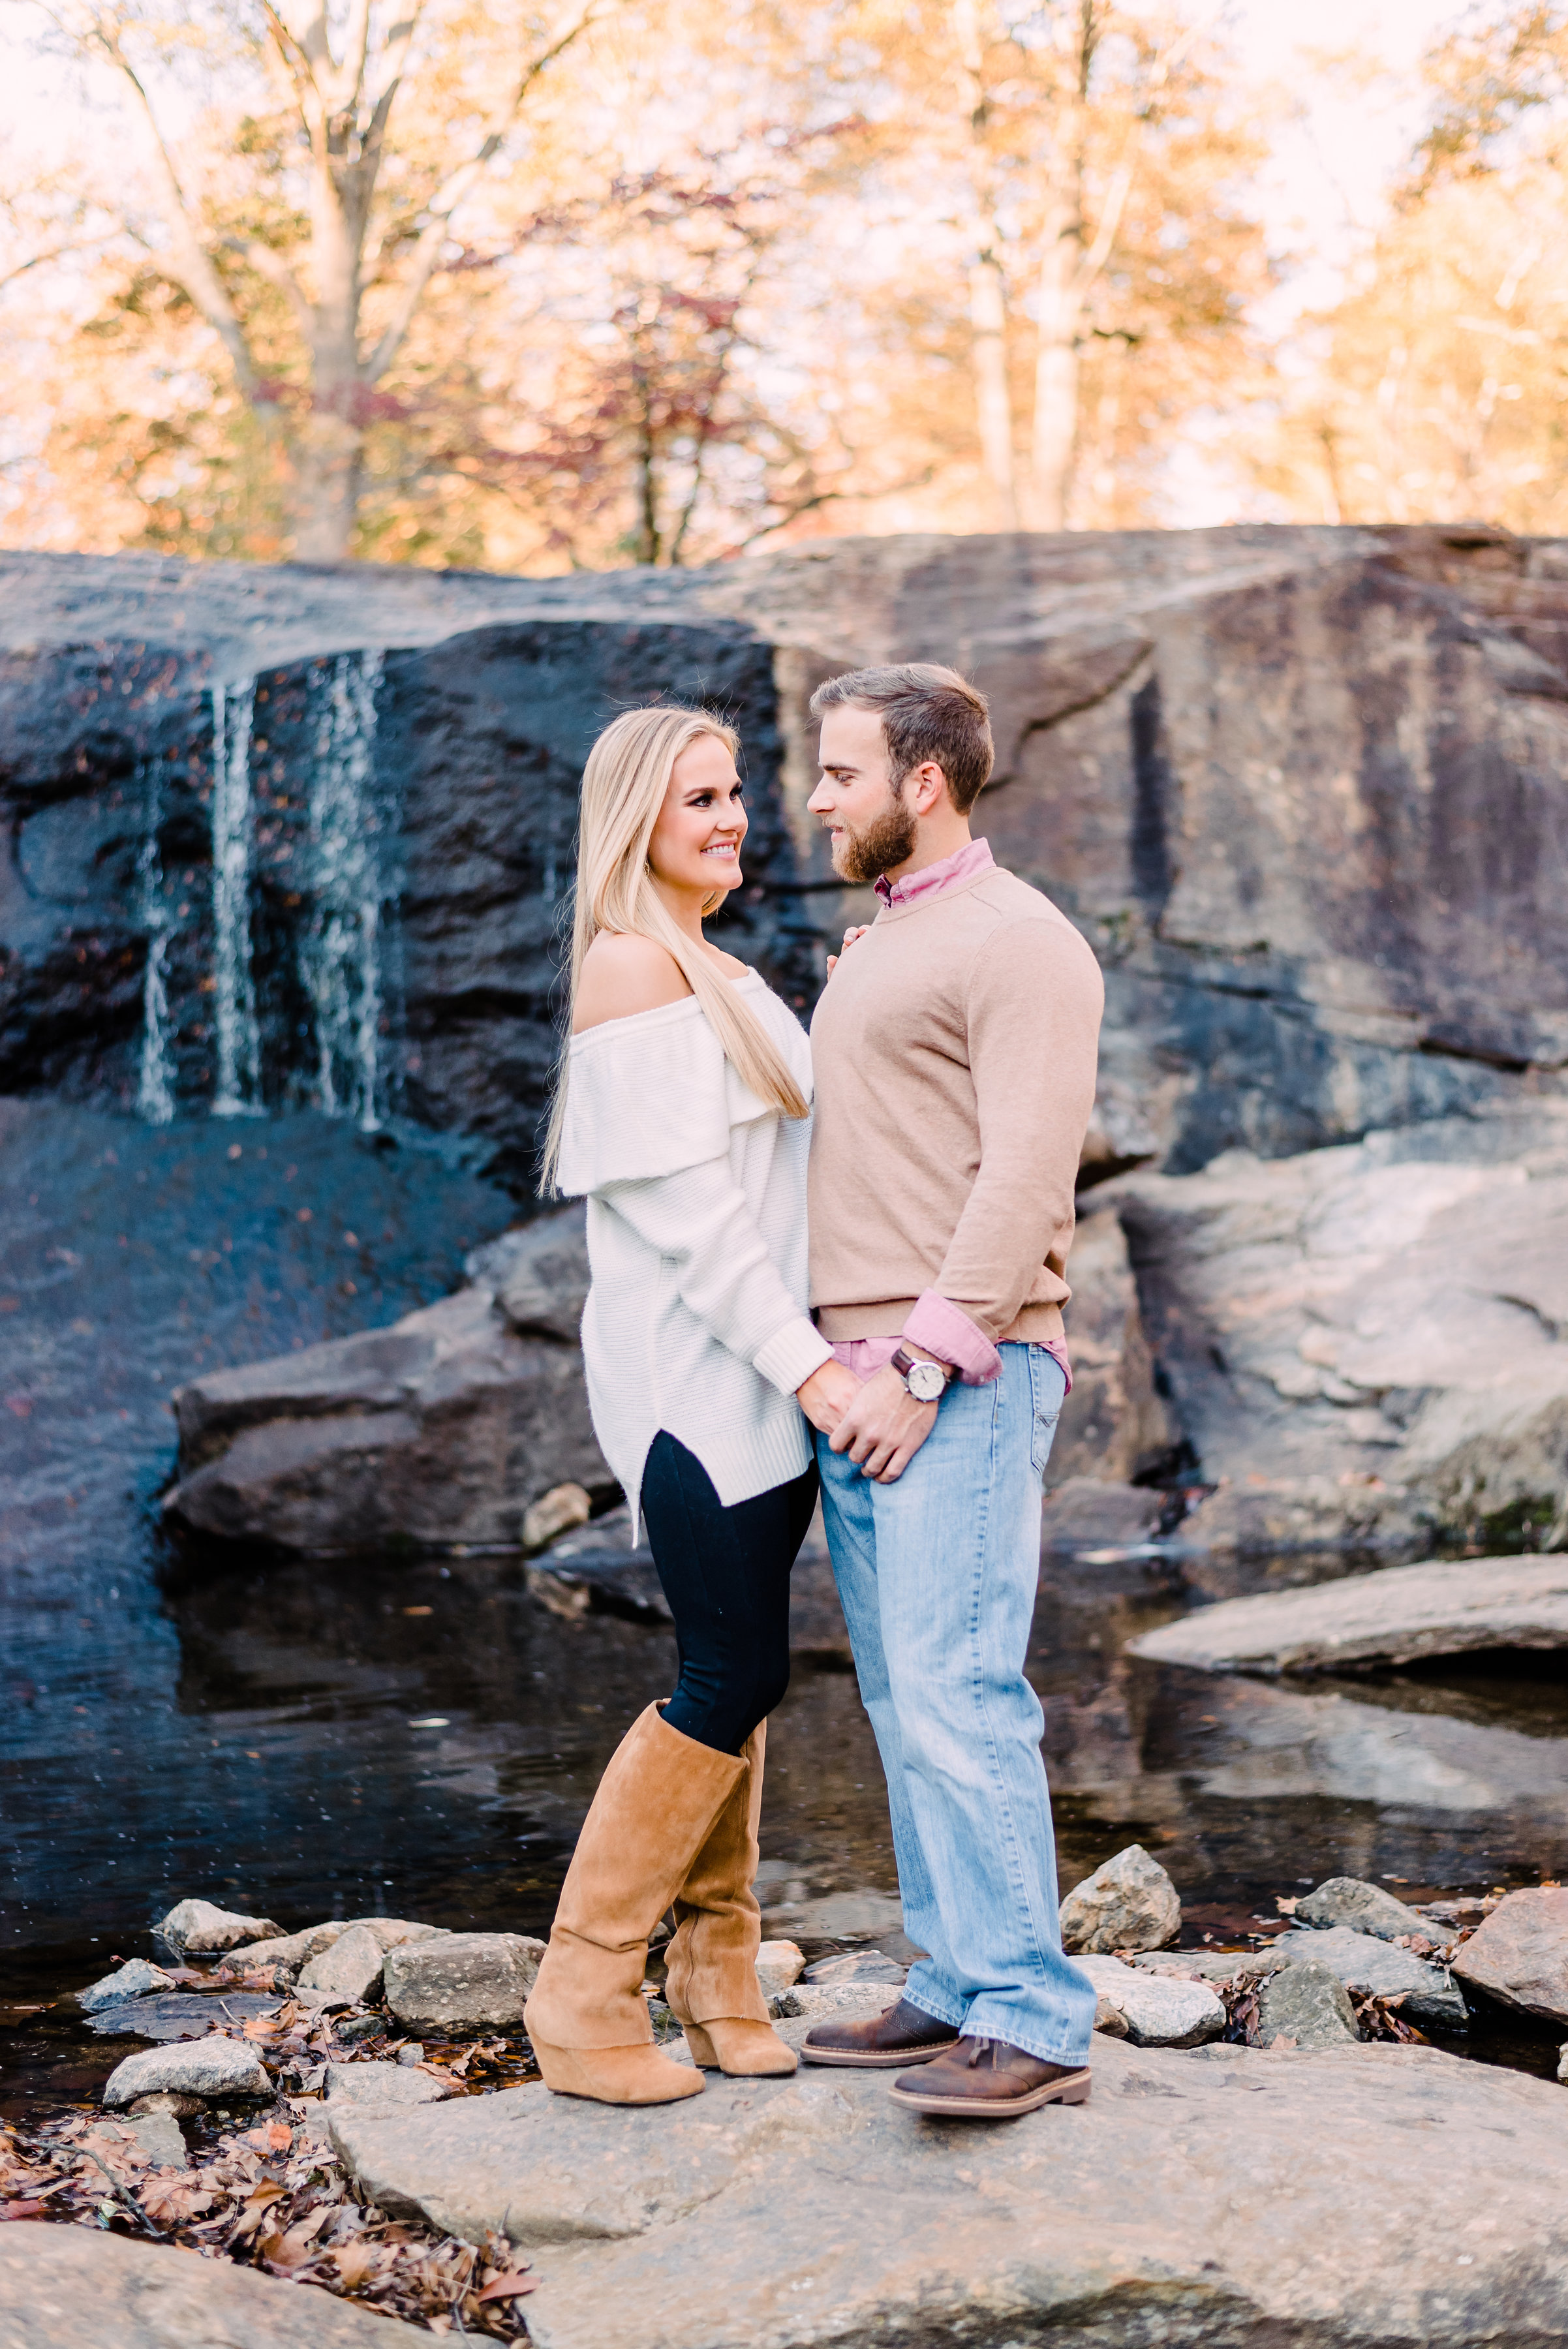 Kirby_Mobley_engaged-65.jpg